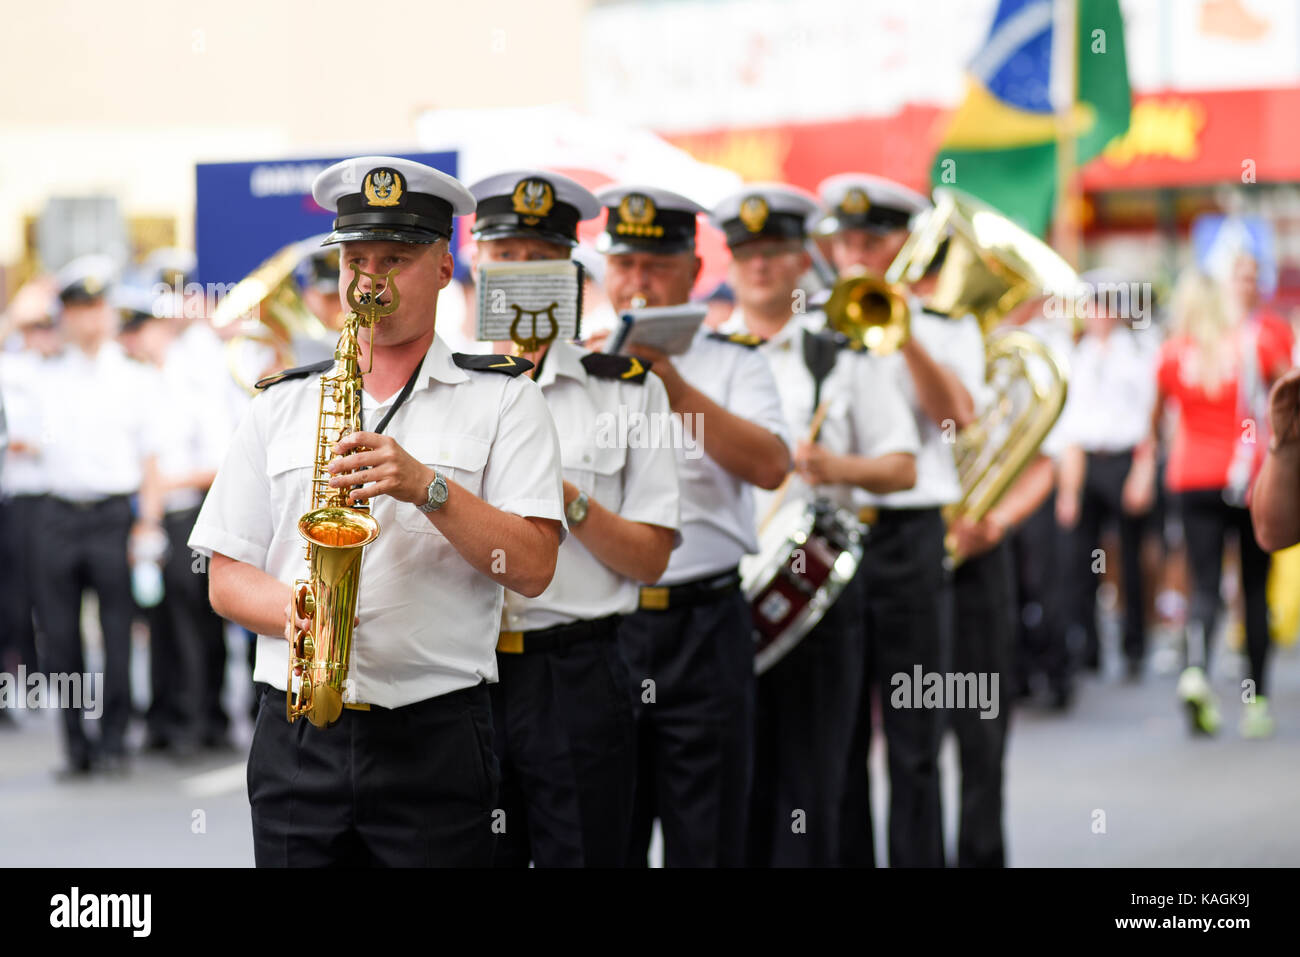 Szczecin, Poland, 6 august 2017: The Tall Ships Races 2017 crew parade in Szczecin, orchestra. - Stock Image